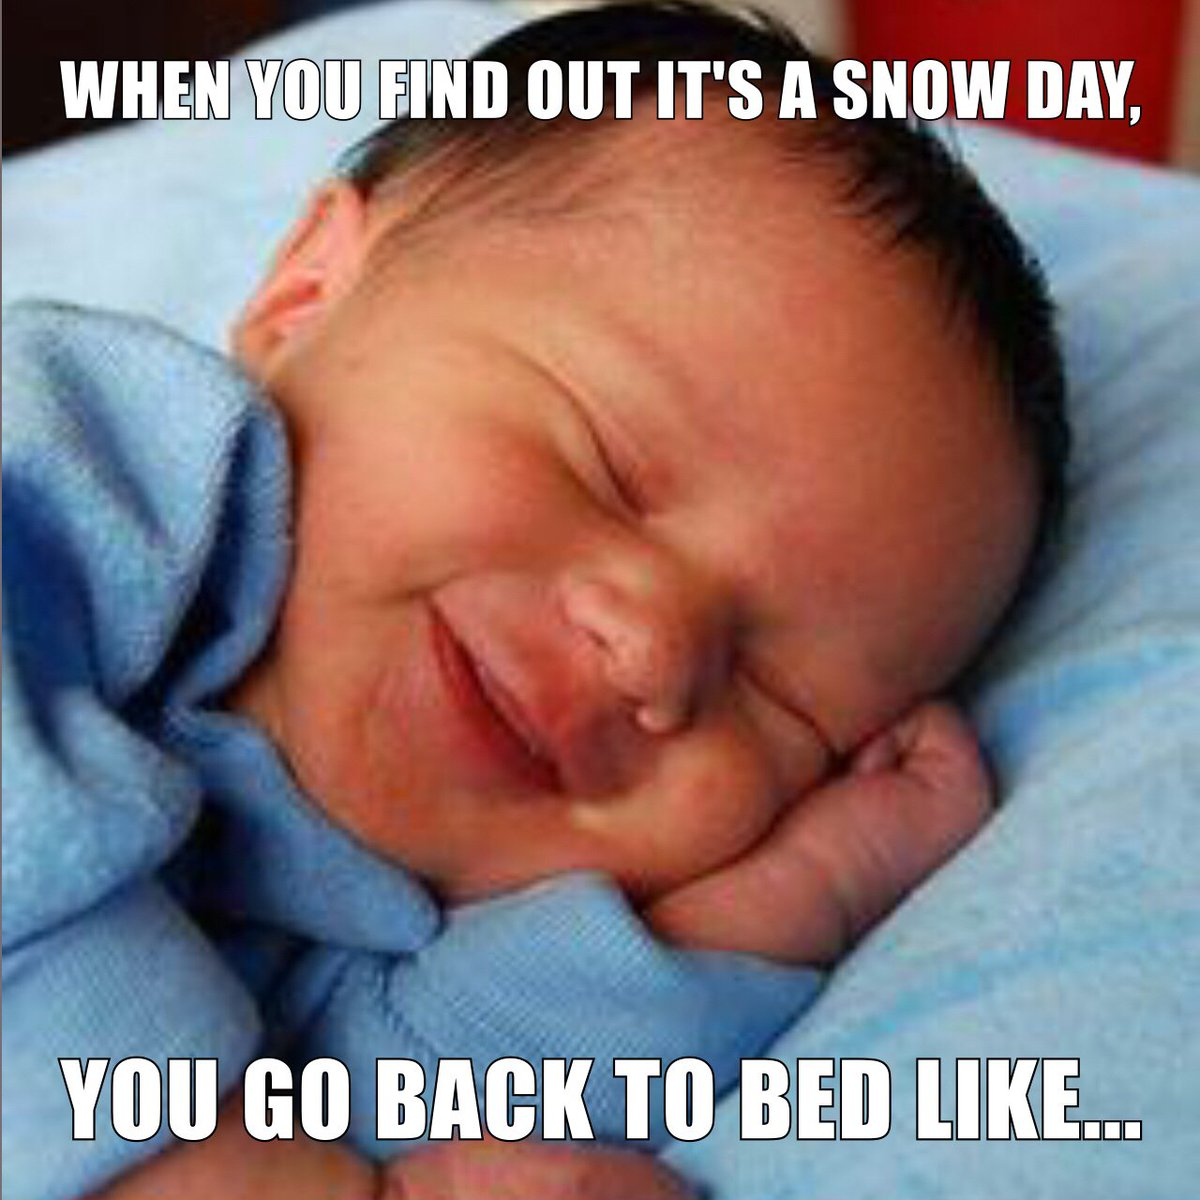 All of us this morning... #snowday ^HJ https://t.co/bS2W13fSo4